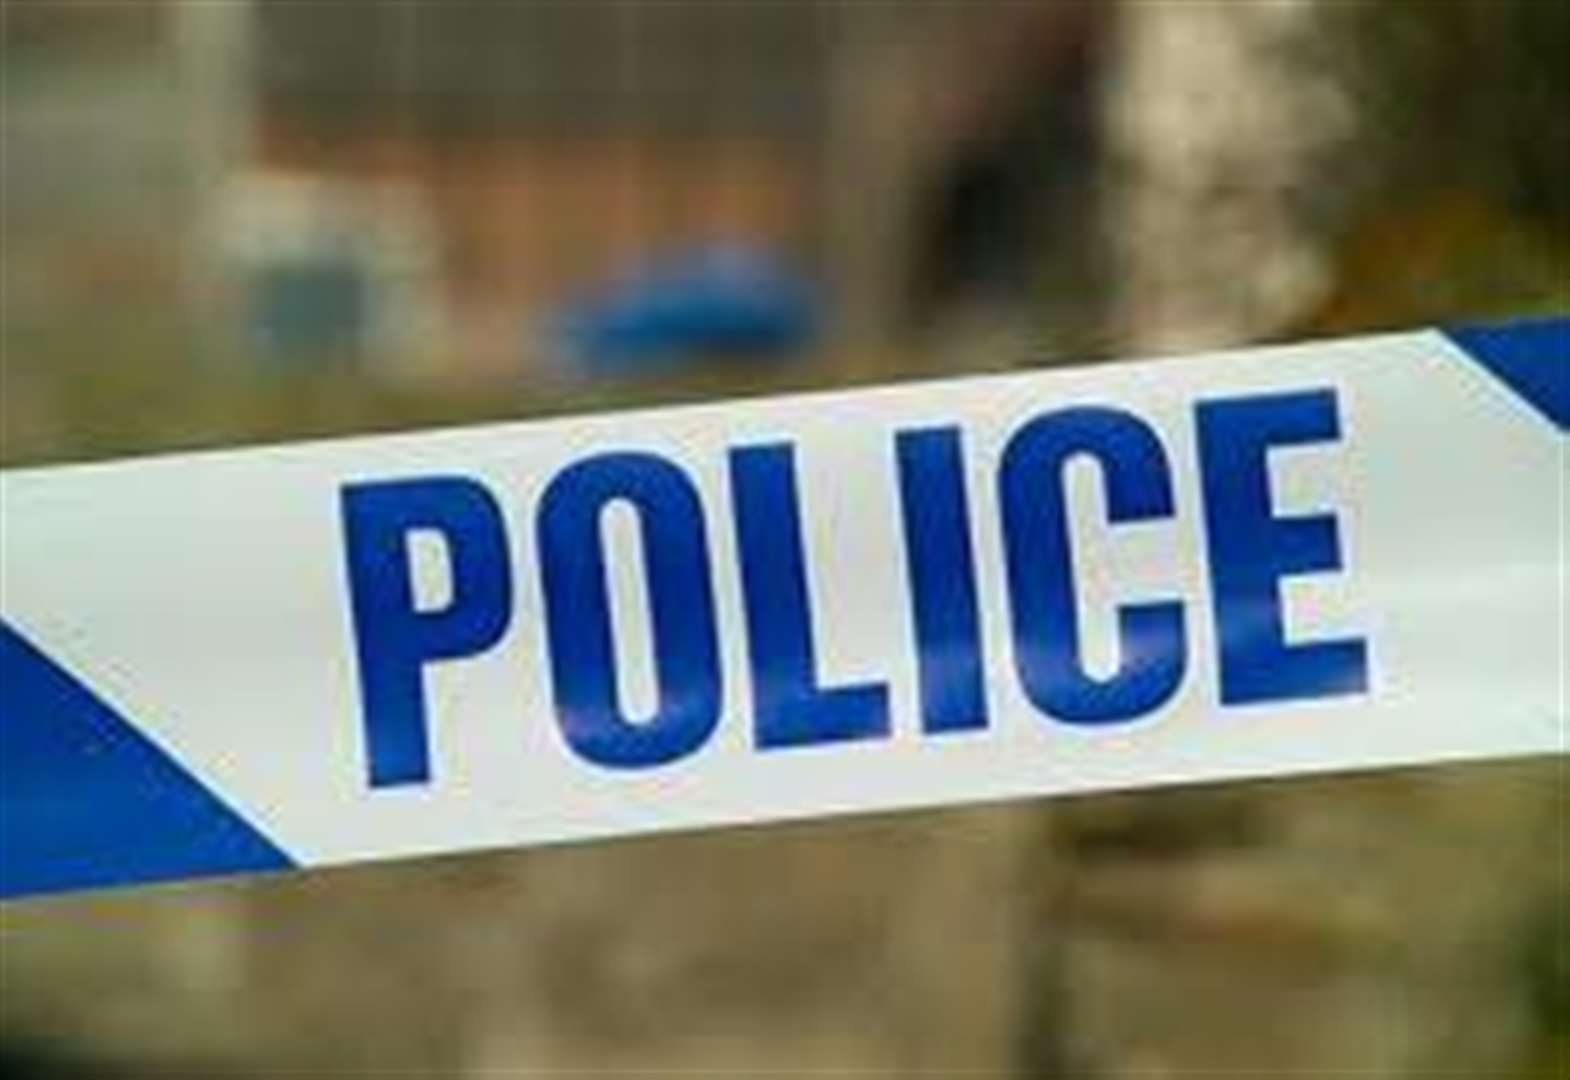 Vehicles targeted in Stowmarket attacks